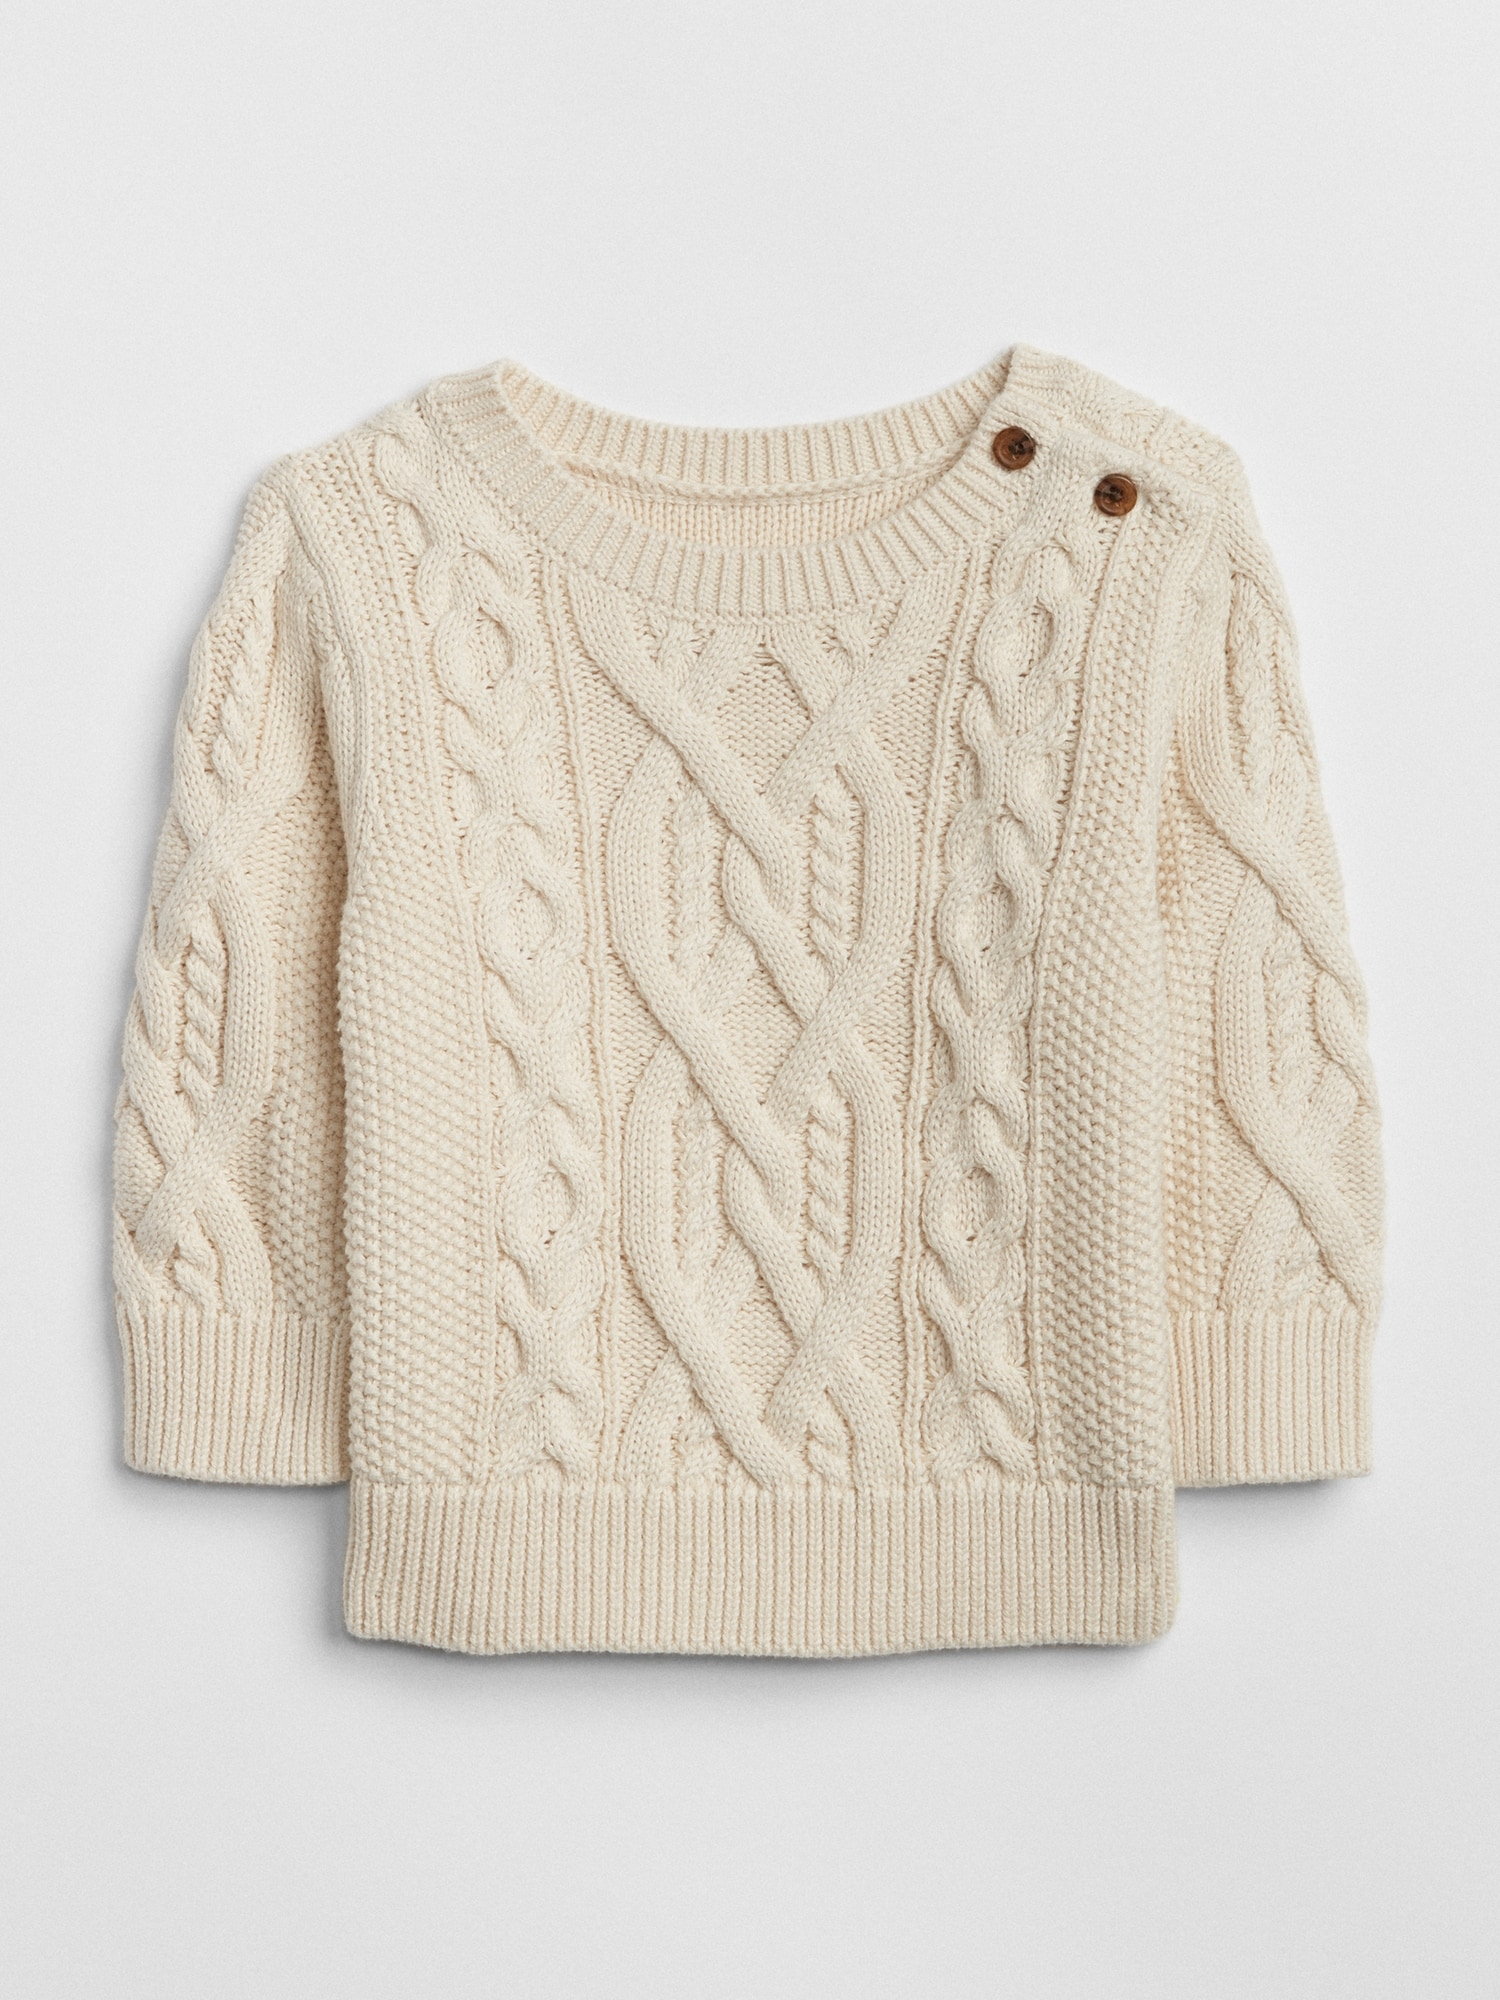 65771cef1 Cable-Knit Sweater